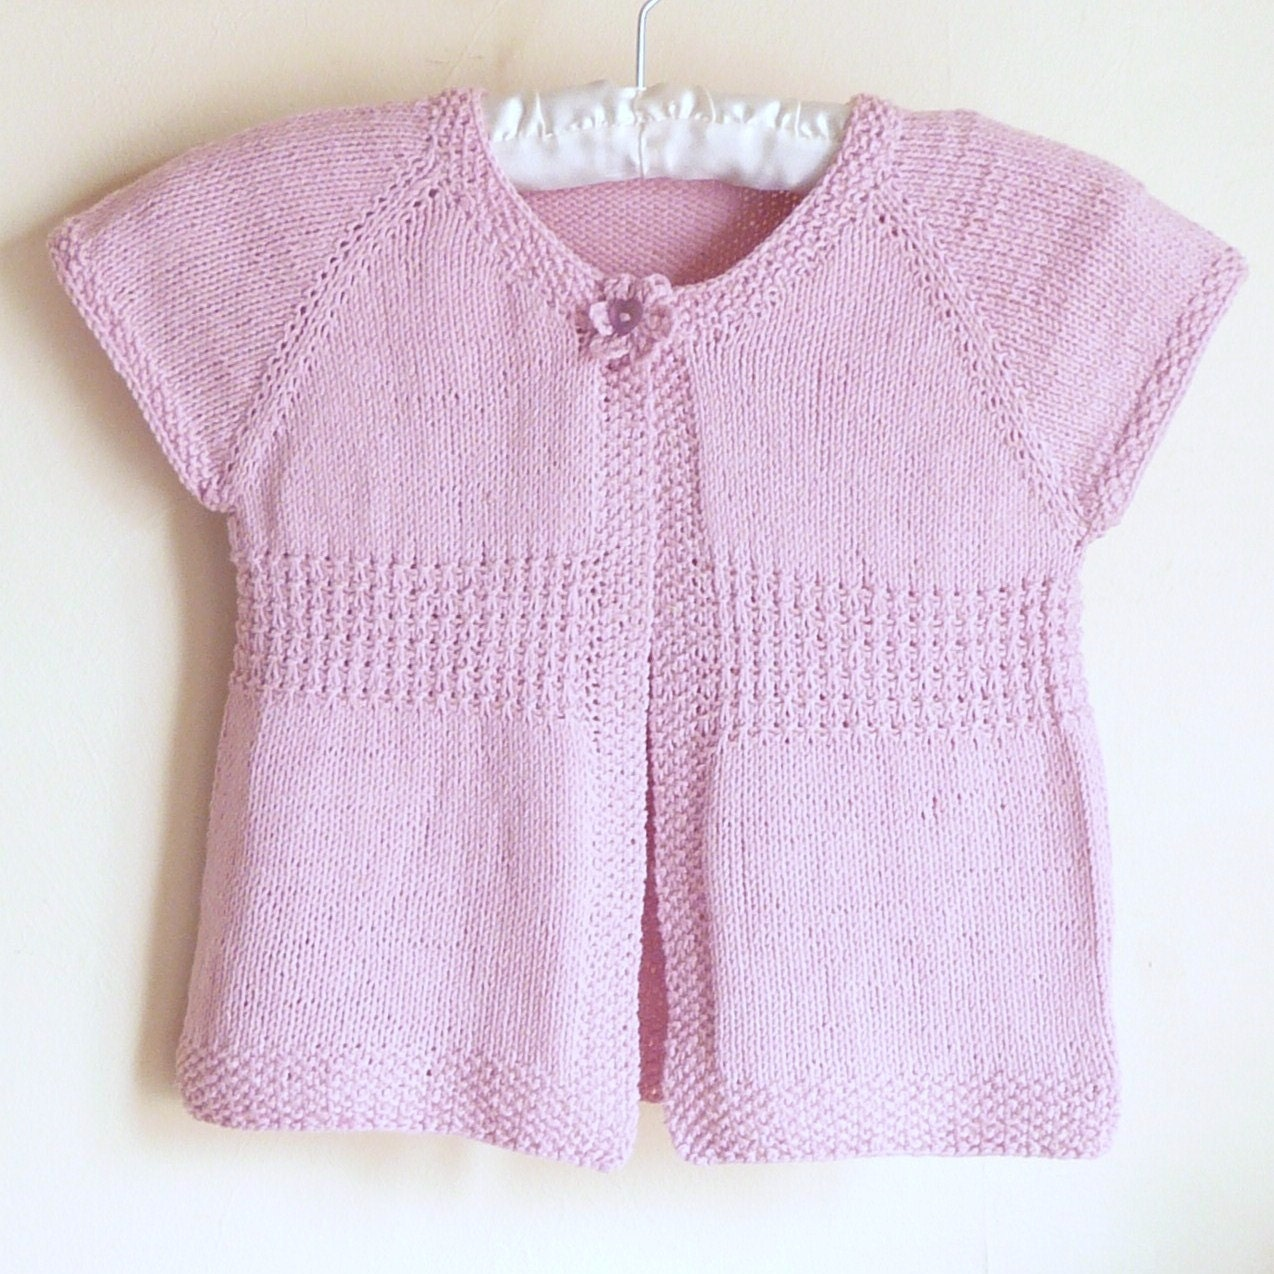 Knitting Patterns For Girl Sweaters : Knitting PATTERN Seamless Top Down Baby Girl CARDIGAN by ...